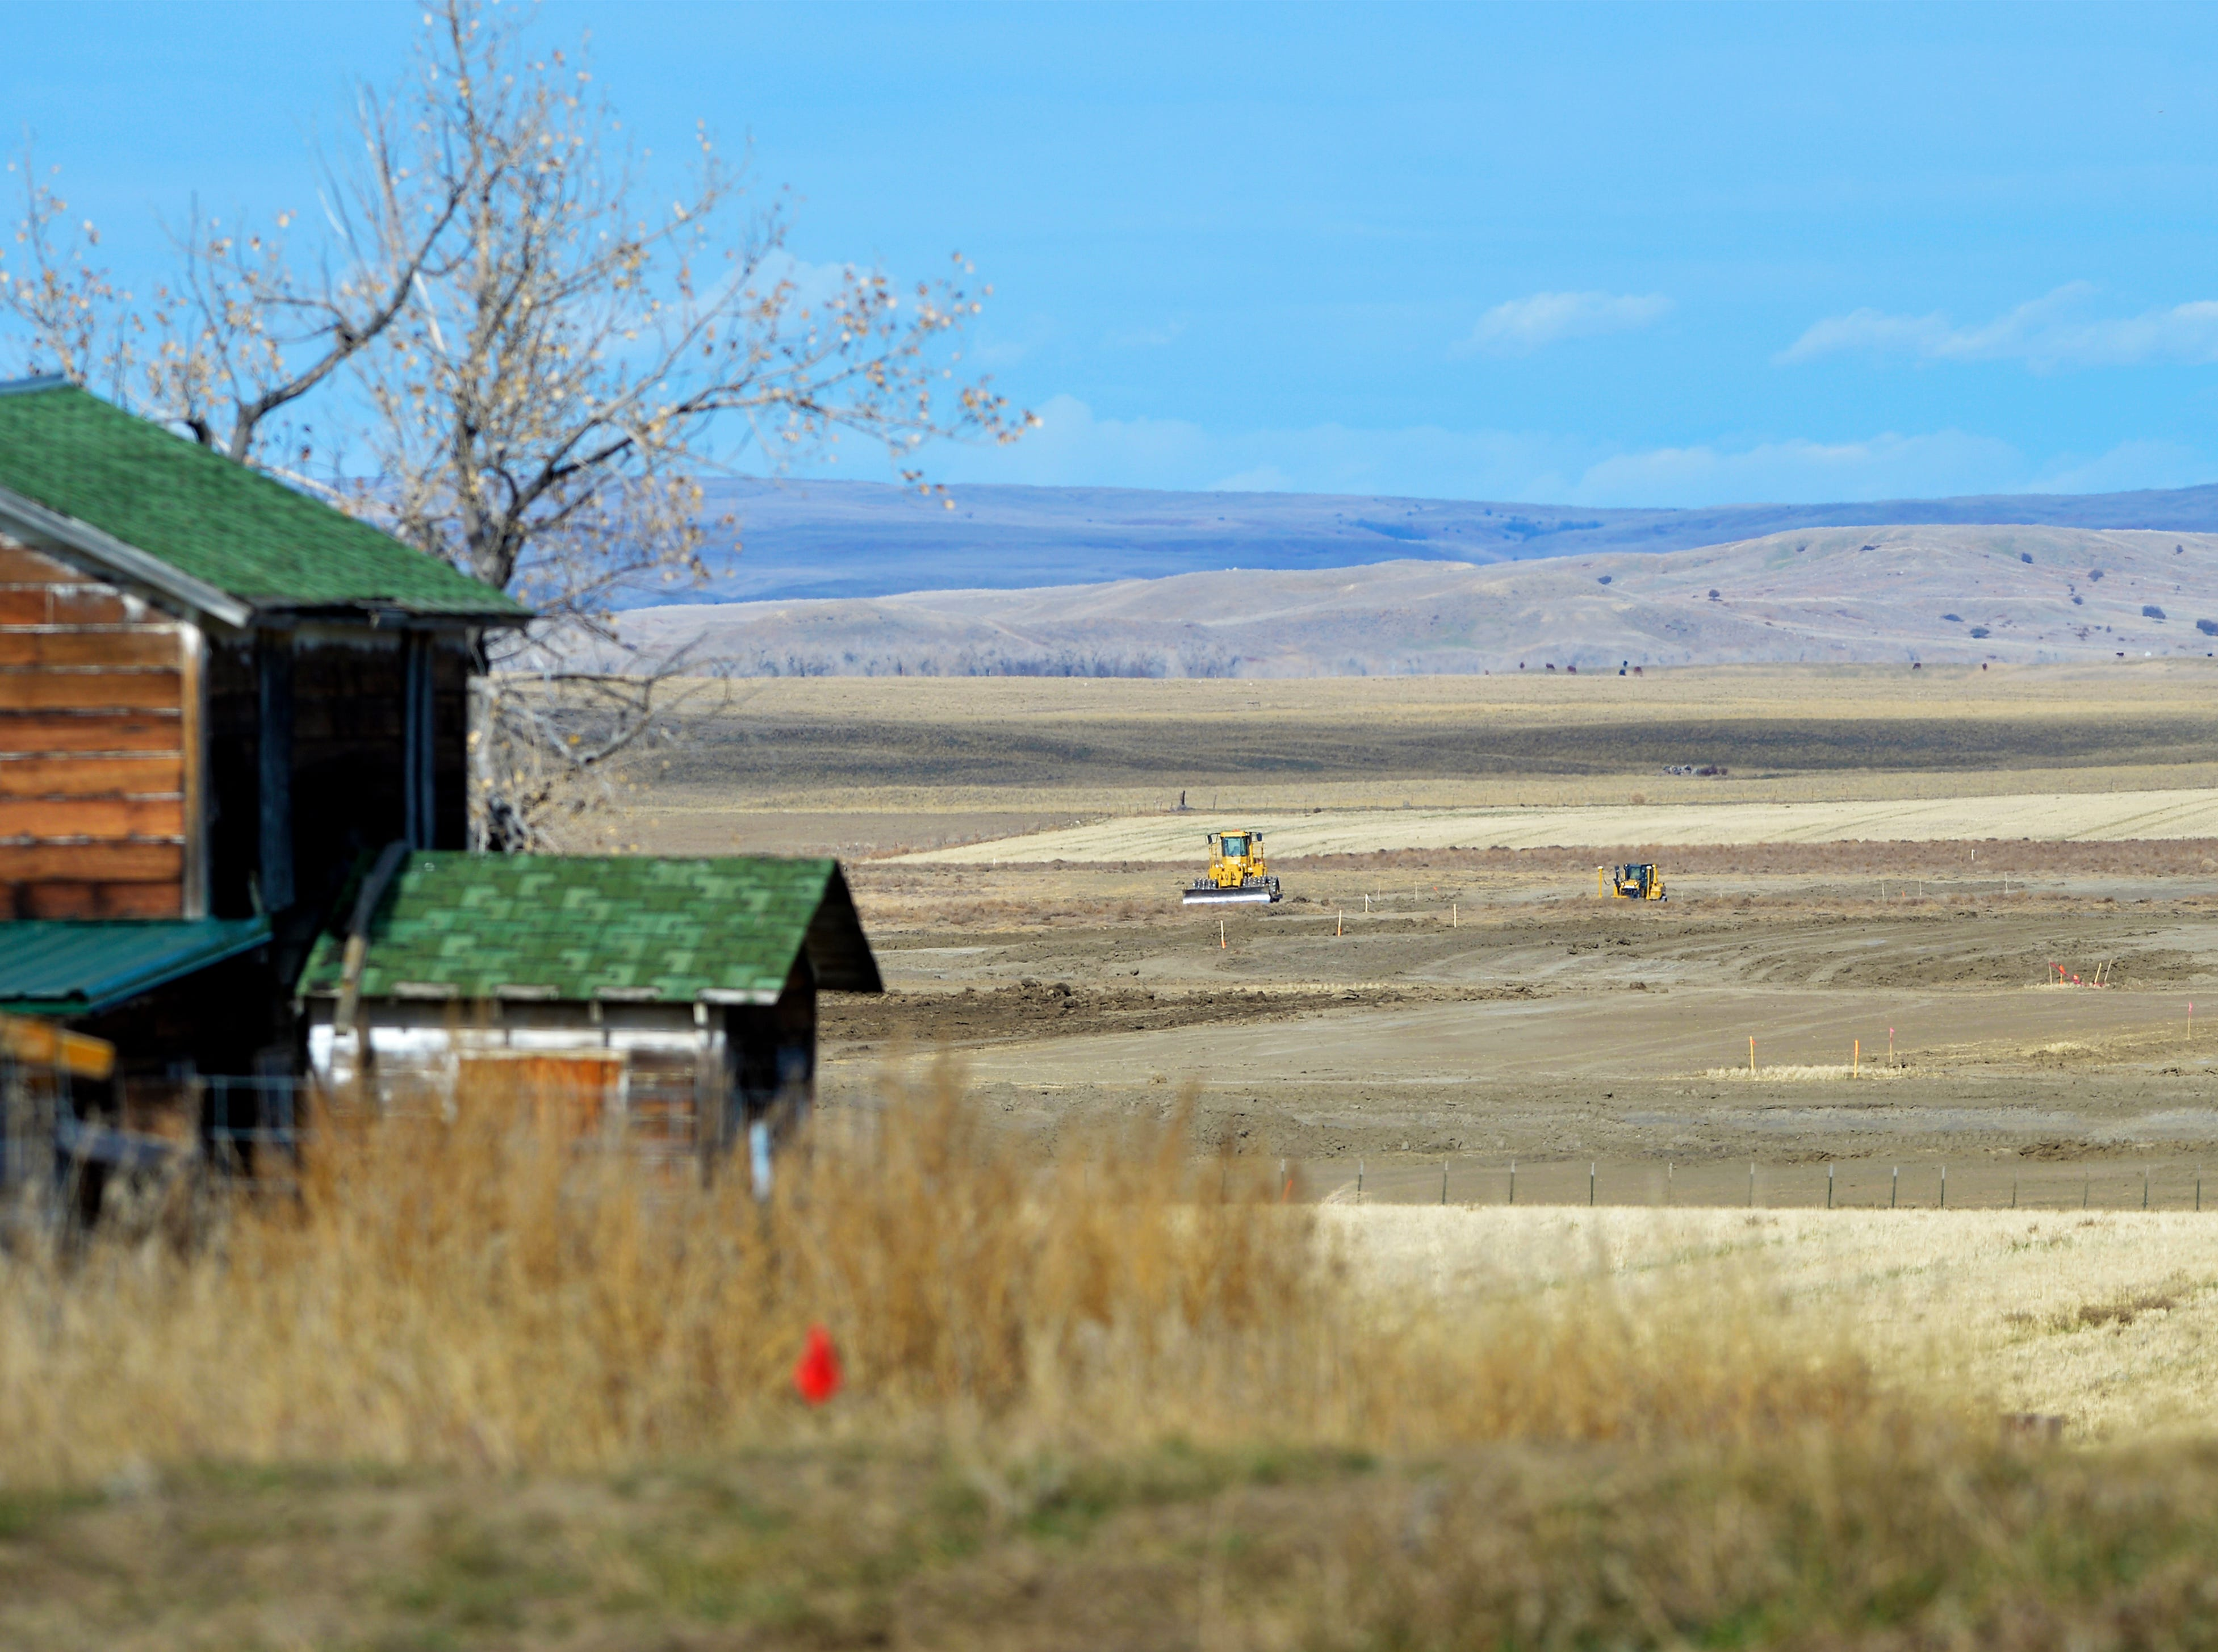 An old farm house overlooks a field that will be used for the site of a construction camp where workes will stay during construction of the Keystone XL Pipeline in Valley County.  Temporary work camps will be constructed to meet the housing needs of the construction workforce in remote locations.